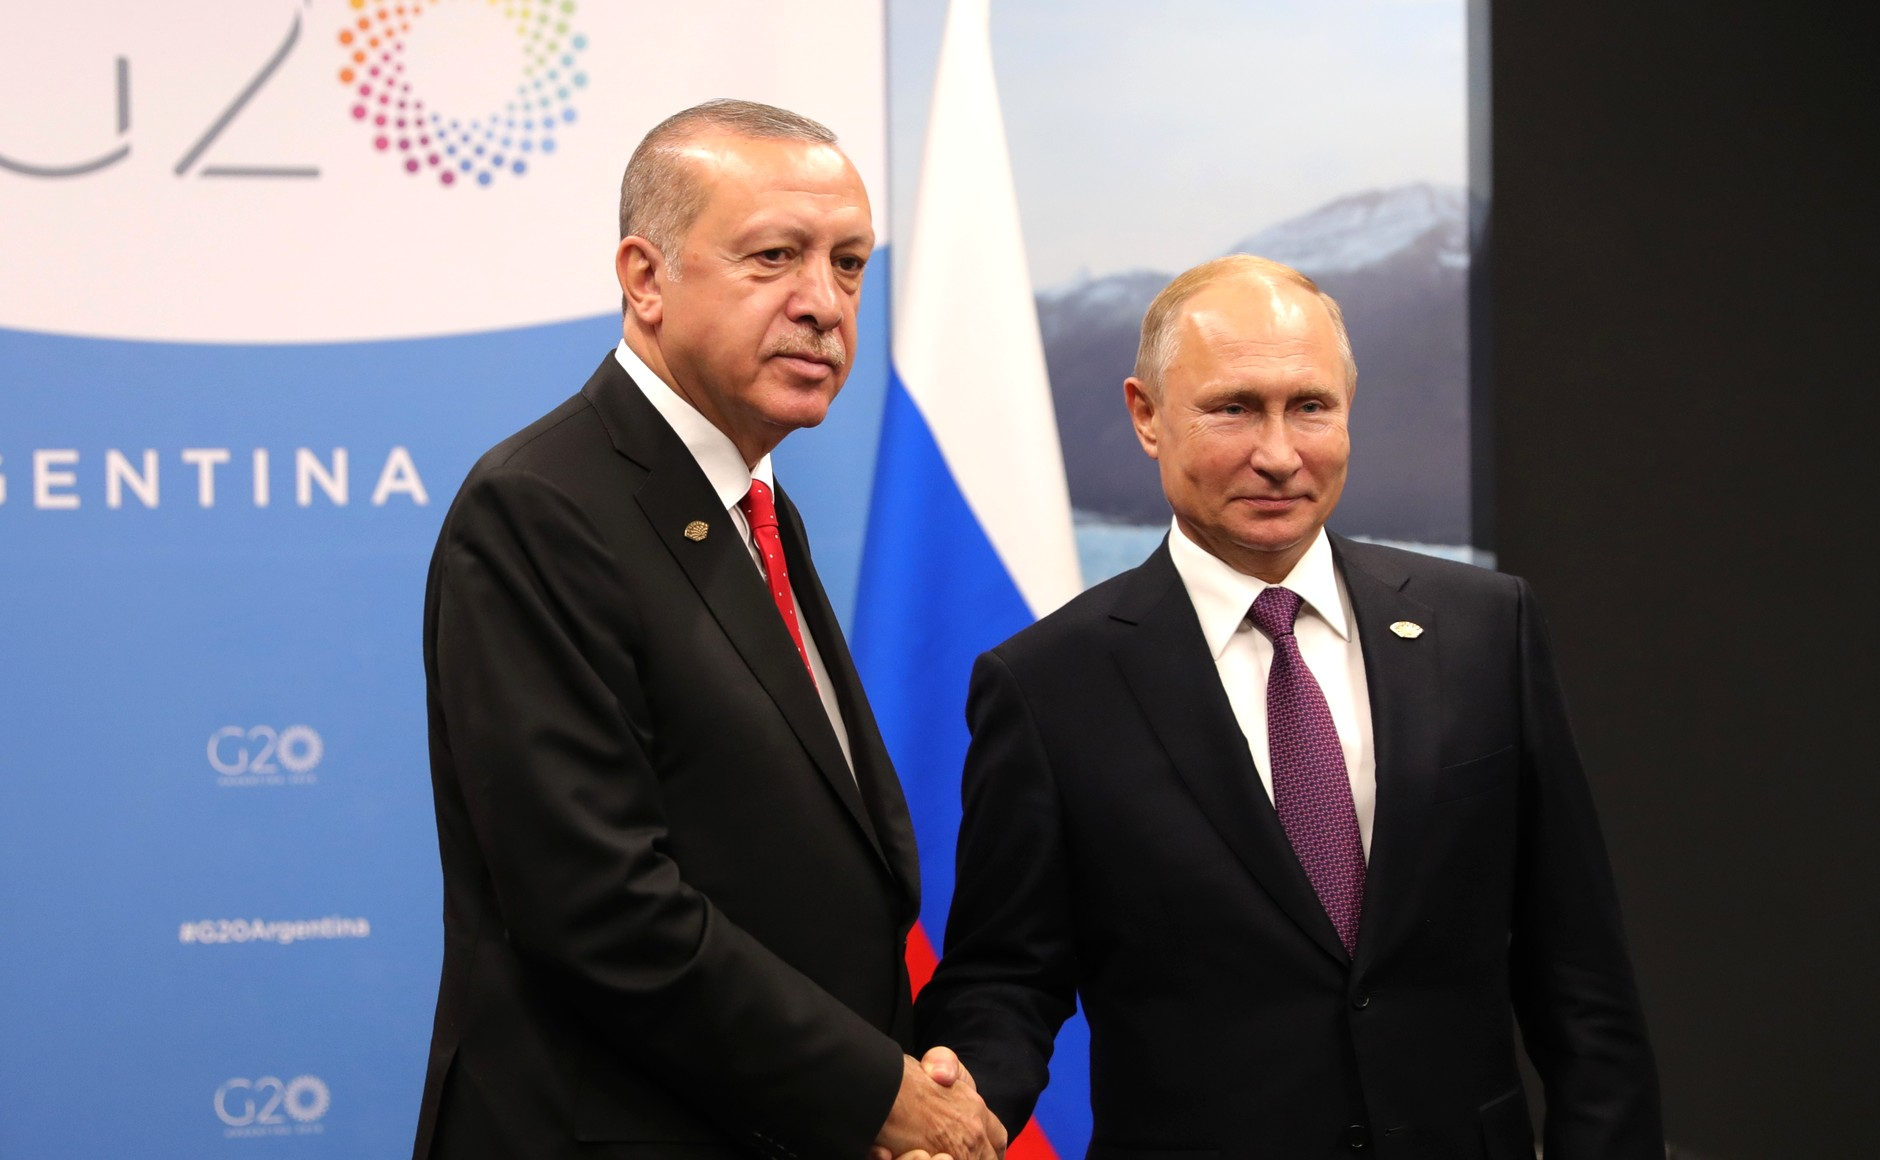 Turkish President Recep Tayyip Erdogan, left, pictured in December 2018 meeting with Russian President Vladimir Putin, right, on the sidelines of the G20 Summit in Argentina. (The Kremlin)